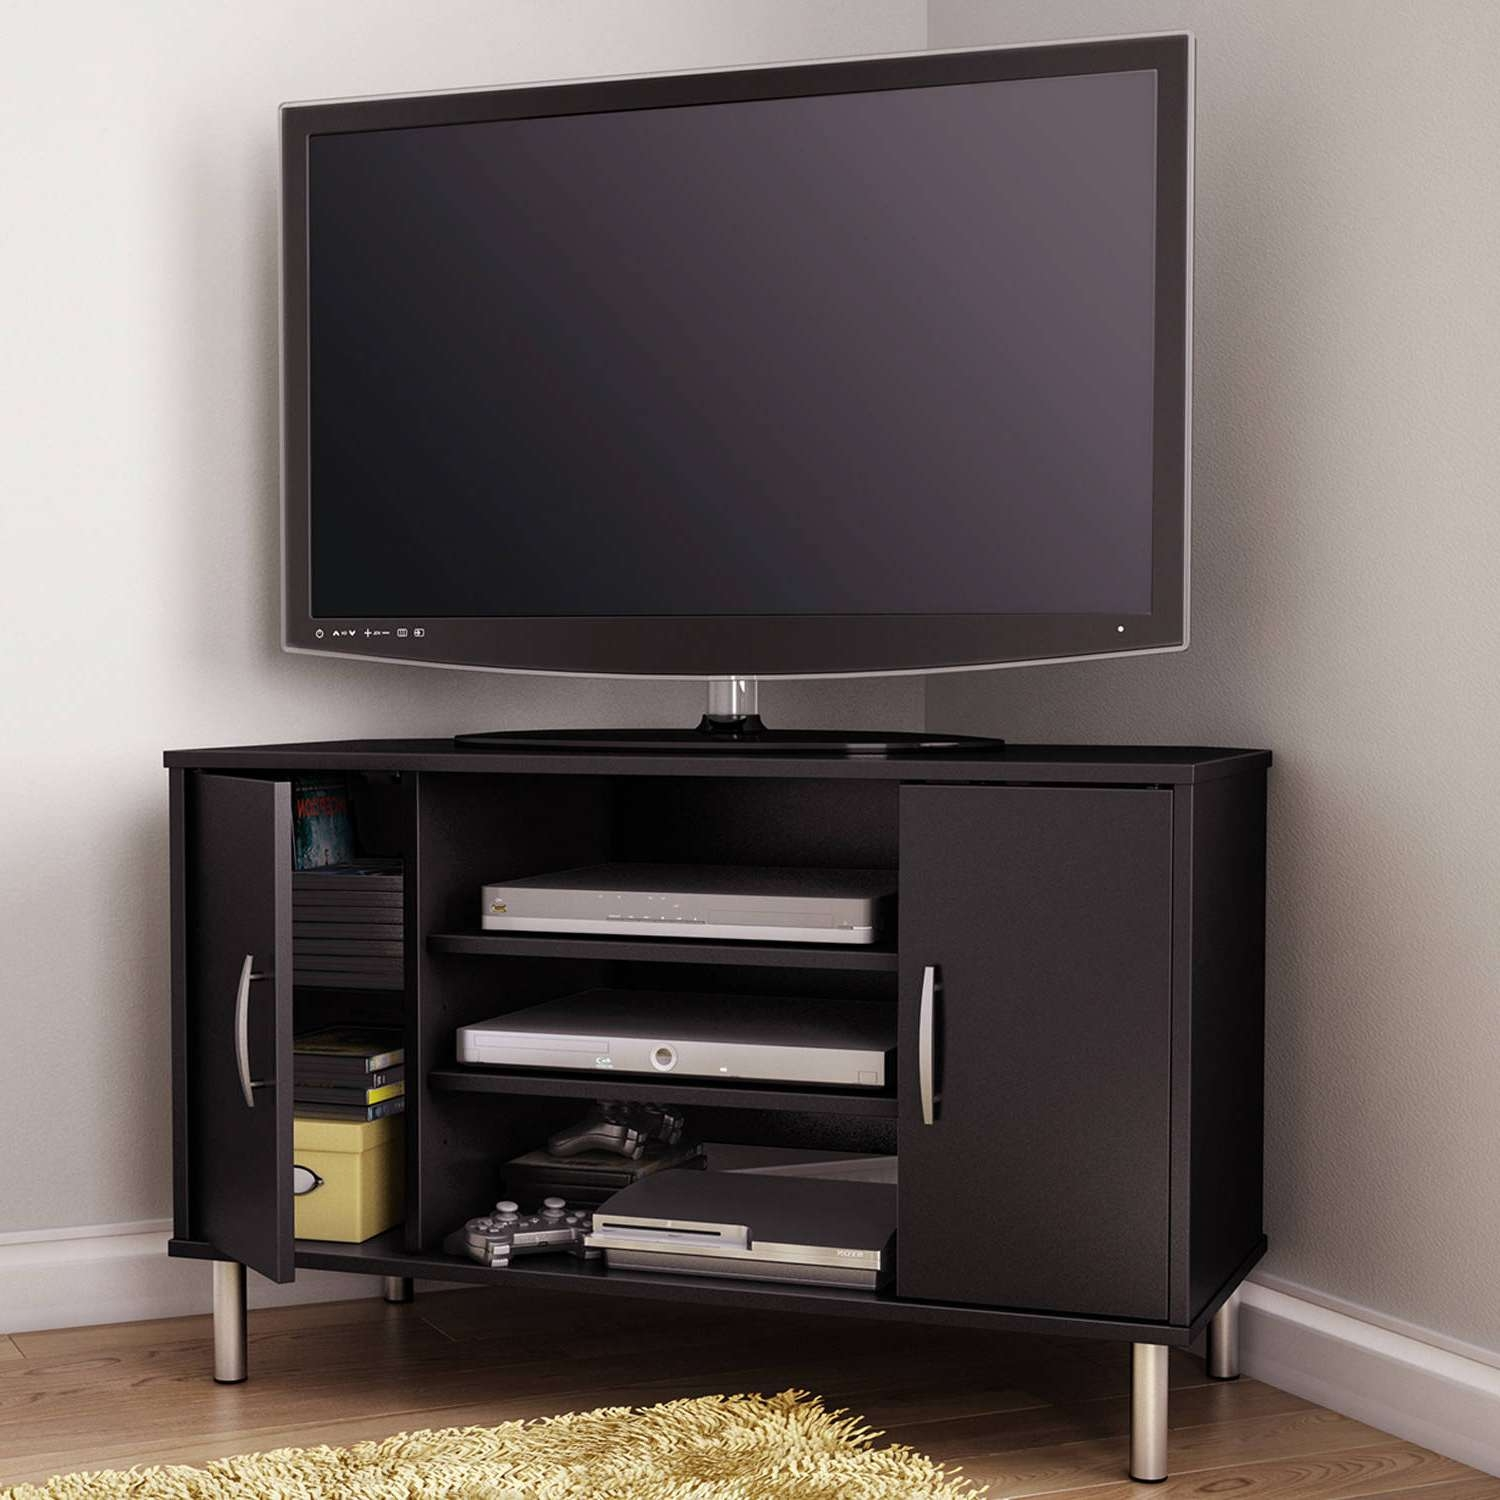 Tv Stand : 34 Impressive Flat Screen Corner Tv Stand Photo Regarding Cheap Corner Tv Stands For Flat Screen (View 14 of 20)